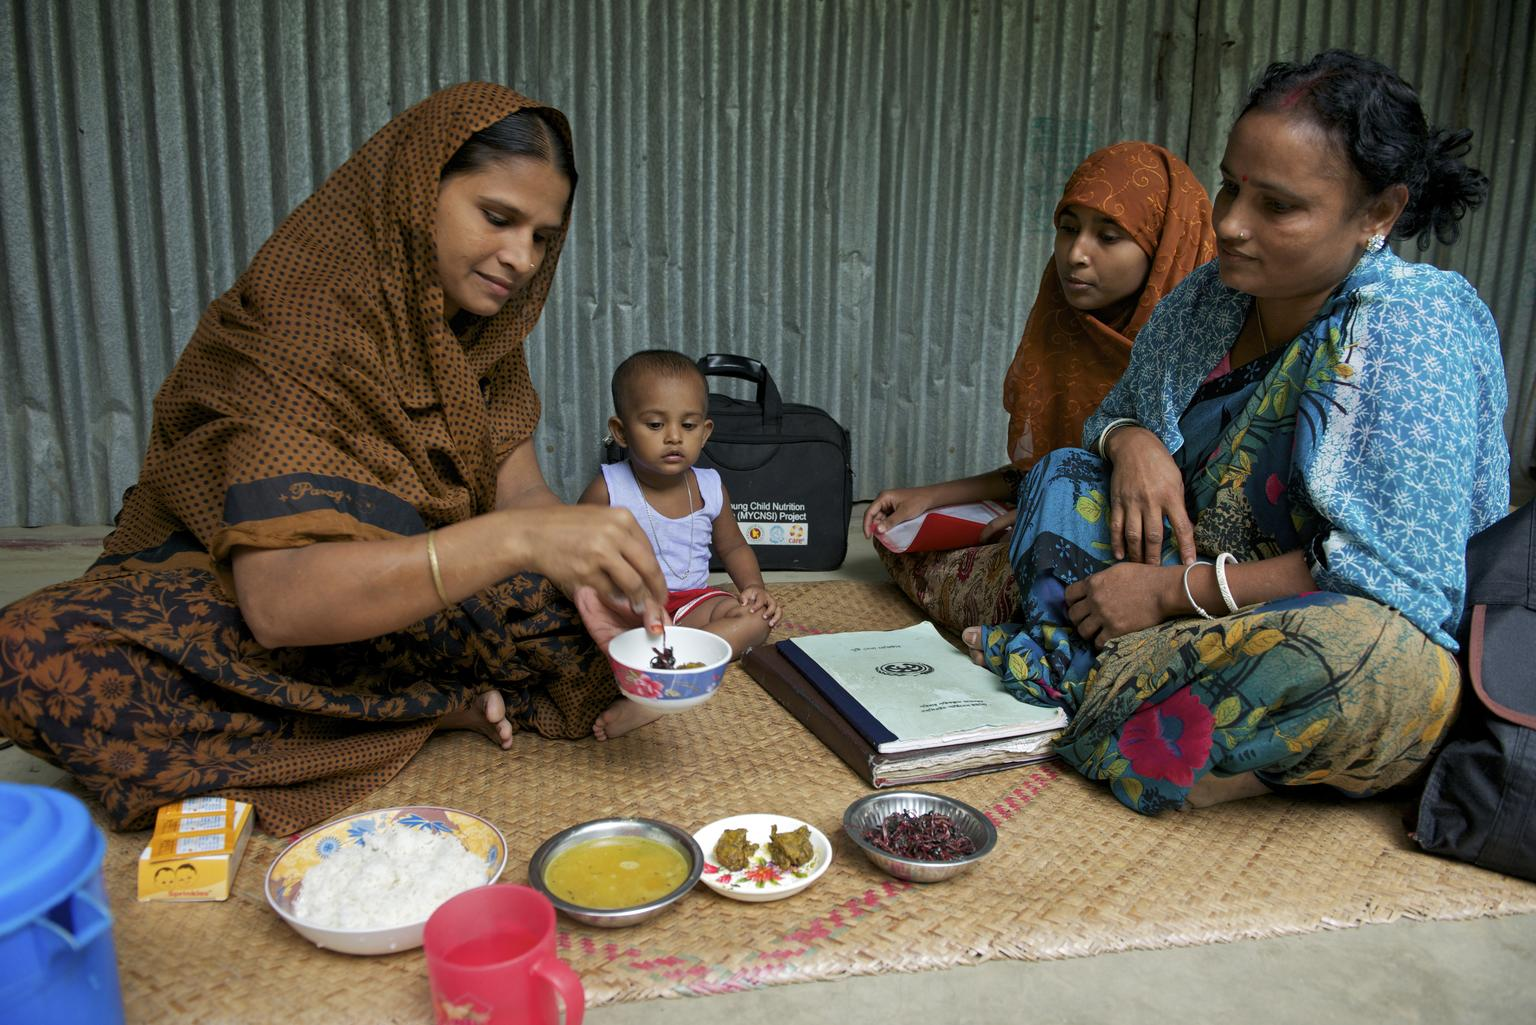 File Photo - Accompanied by a health worker, Chaya Rani (left) adds Sprinkles, a micronutrient powder (MNP), to food for her 15-month-old daughter, Nishimoni, at home in Sharisha Bari Village in the north-western district of Jamalpur, Dhaka Division. u00a9 UNICEF/NYHQ2012-1962/Noorani